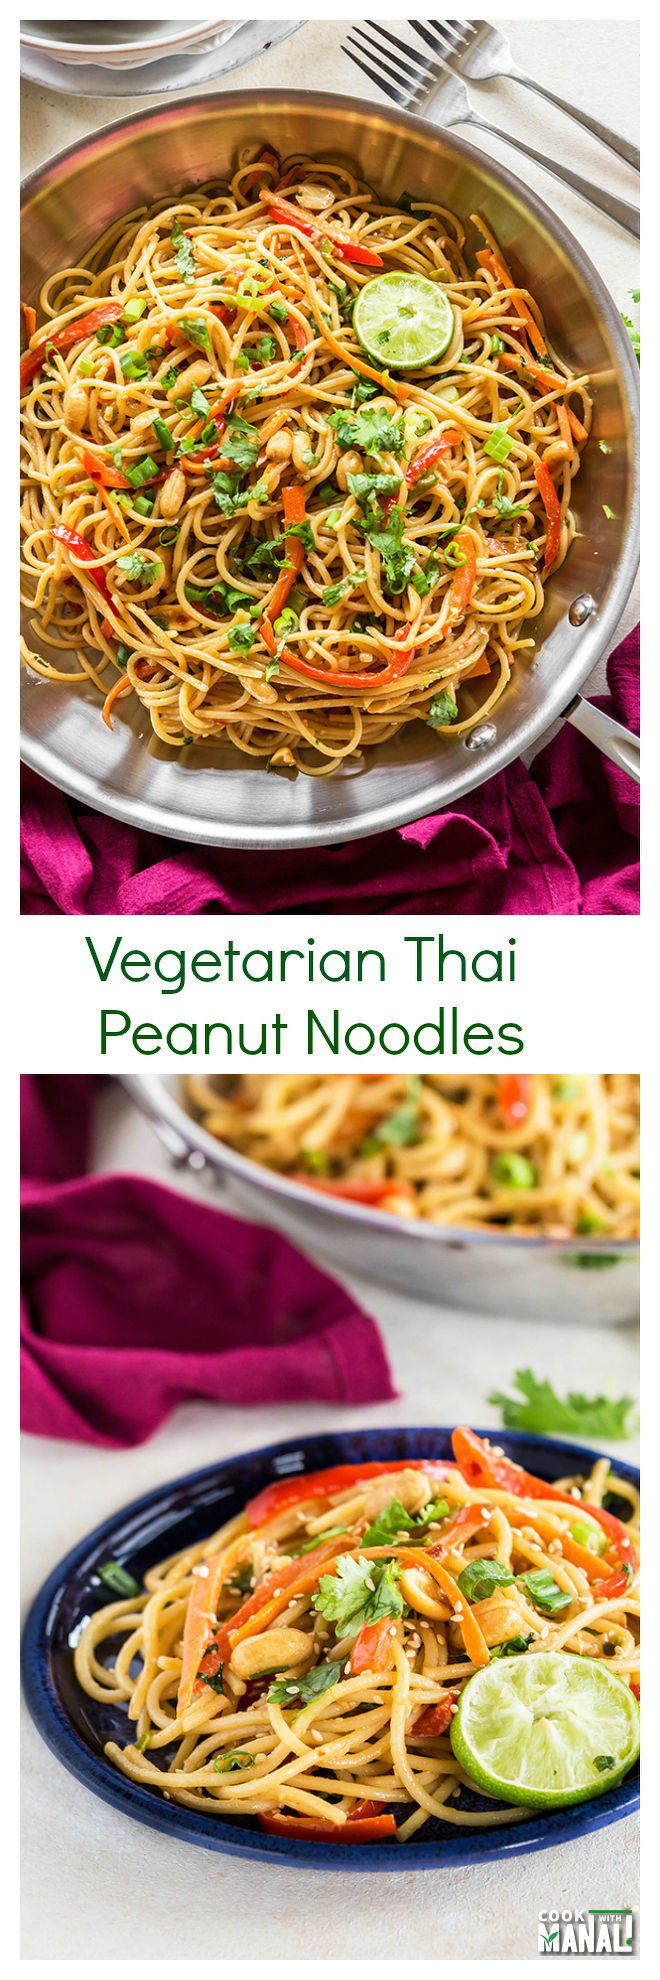 Vegetarian Thai Peanut Noodles Collage